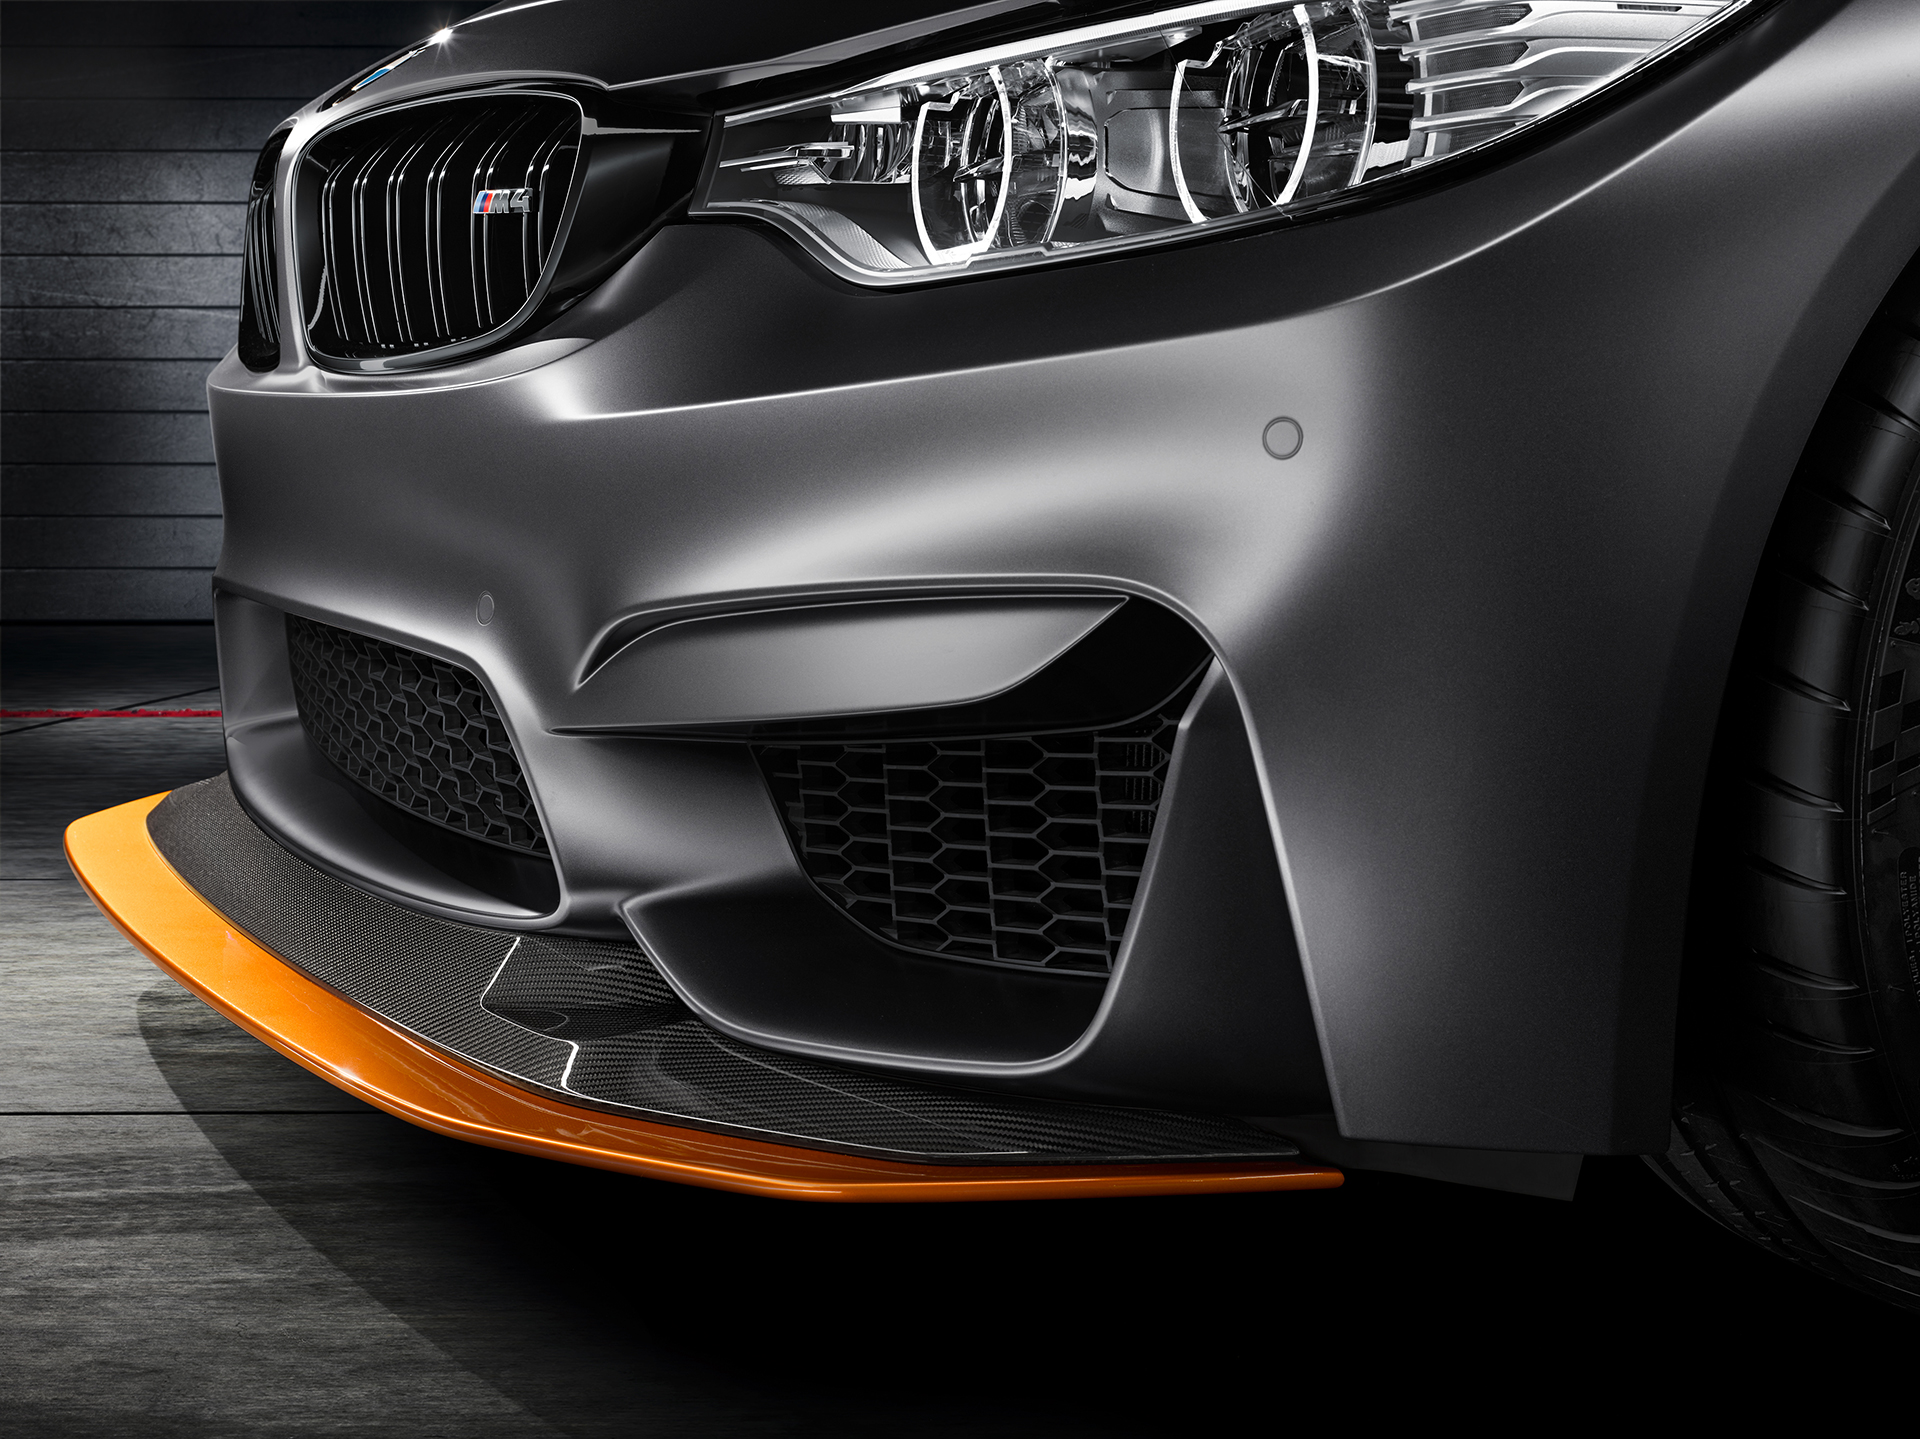 BMW M4 GTS - optique avant / front light